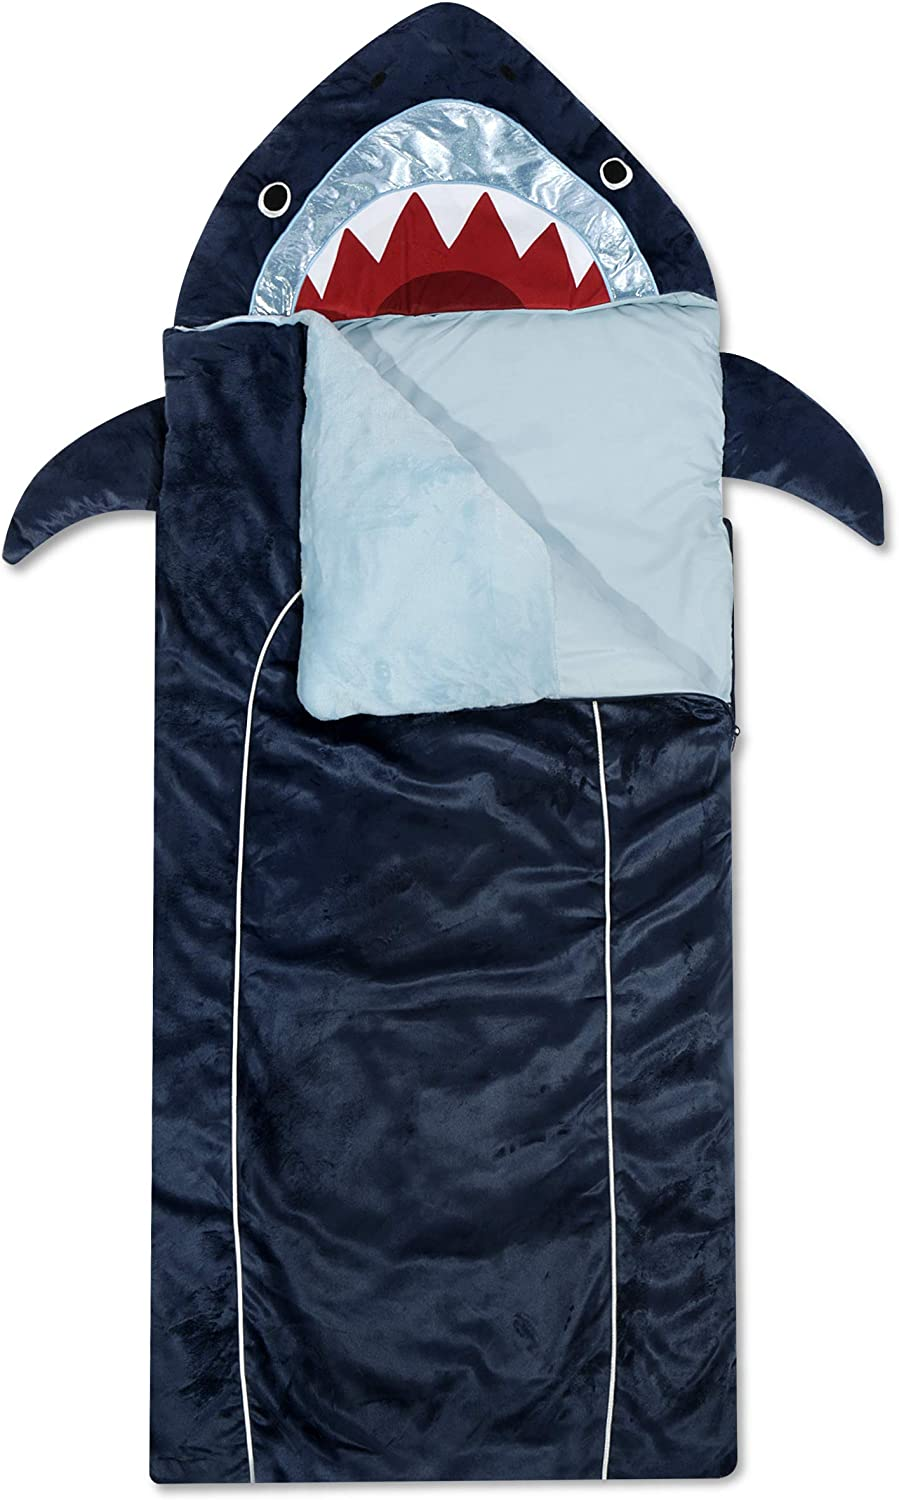 "Heritage Kids Shark Plush Hooded Sleeping Bag, 64"" L x 25"" W, Blue"